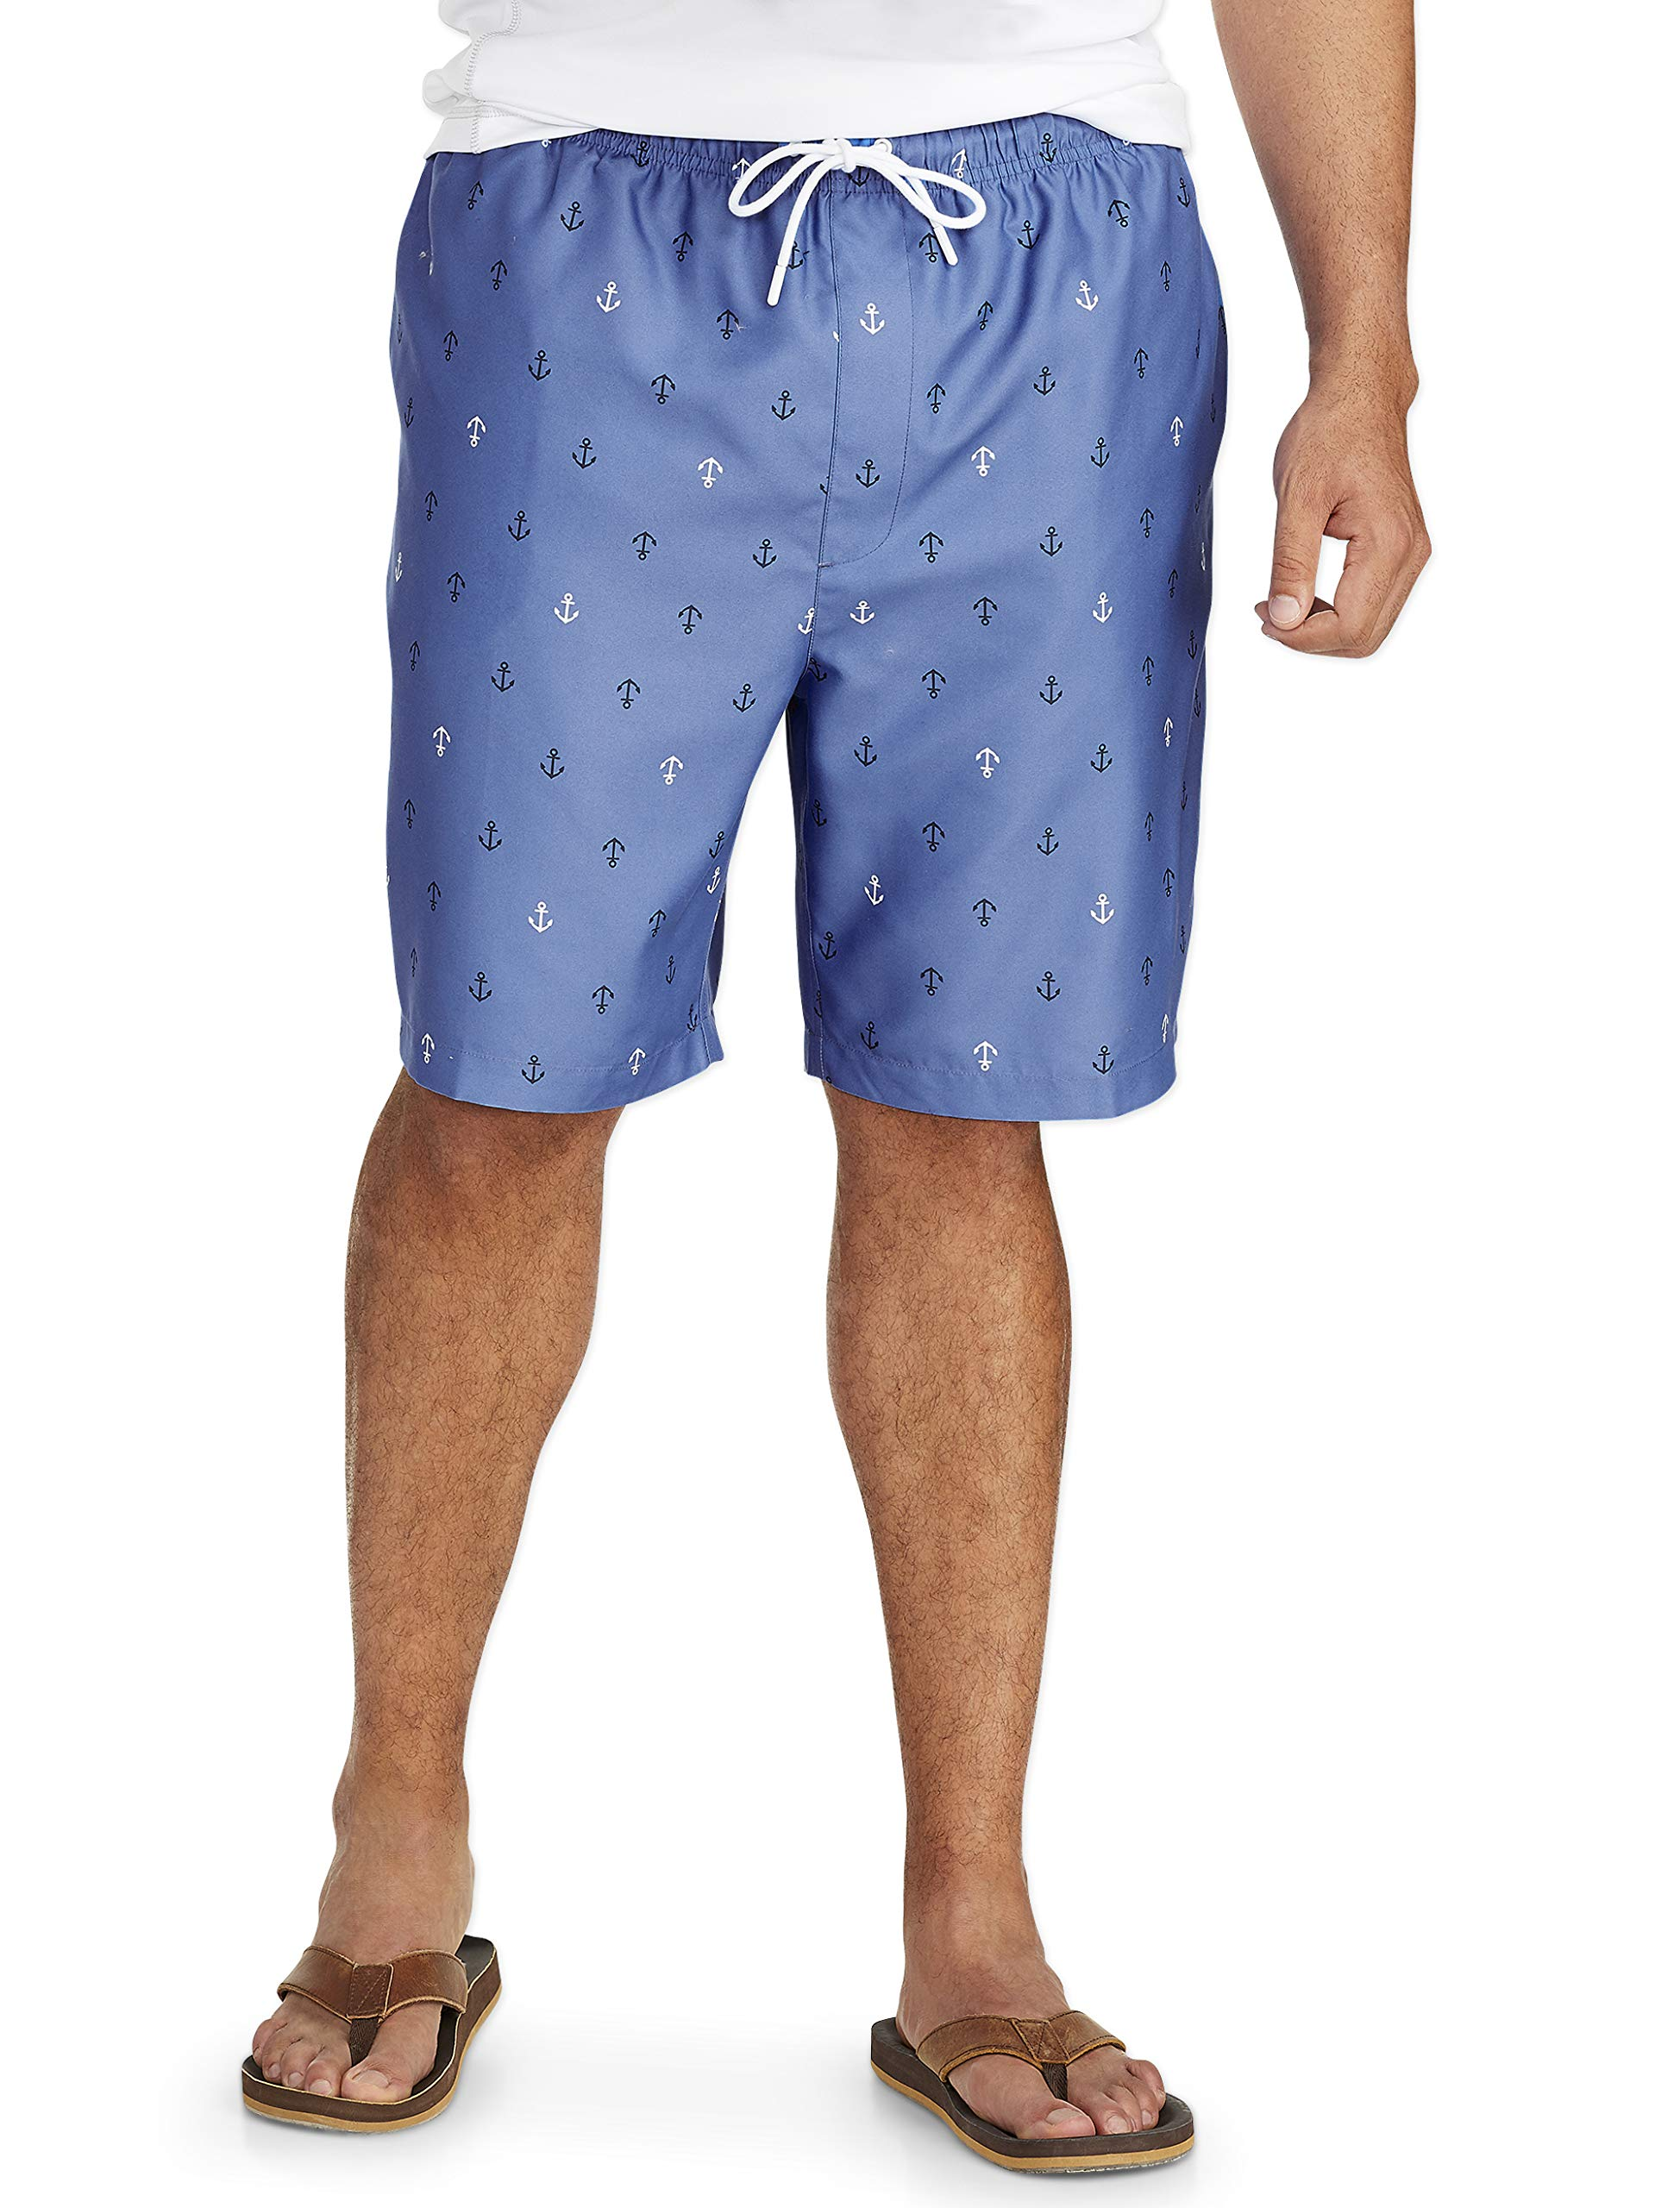 Amazon Essentials Men's Big & Tall Quick-Dry Swim Trunk fit by DXL, Anchor, 2XL by Amazon Essentials